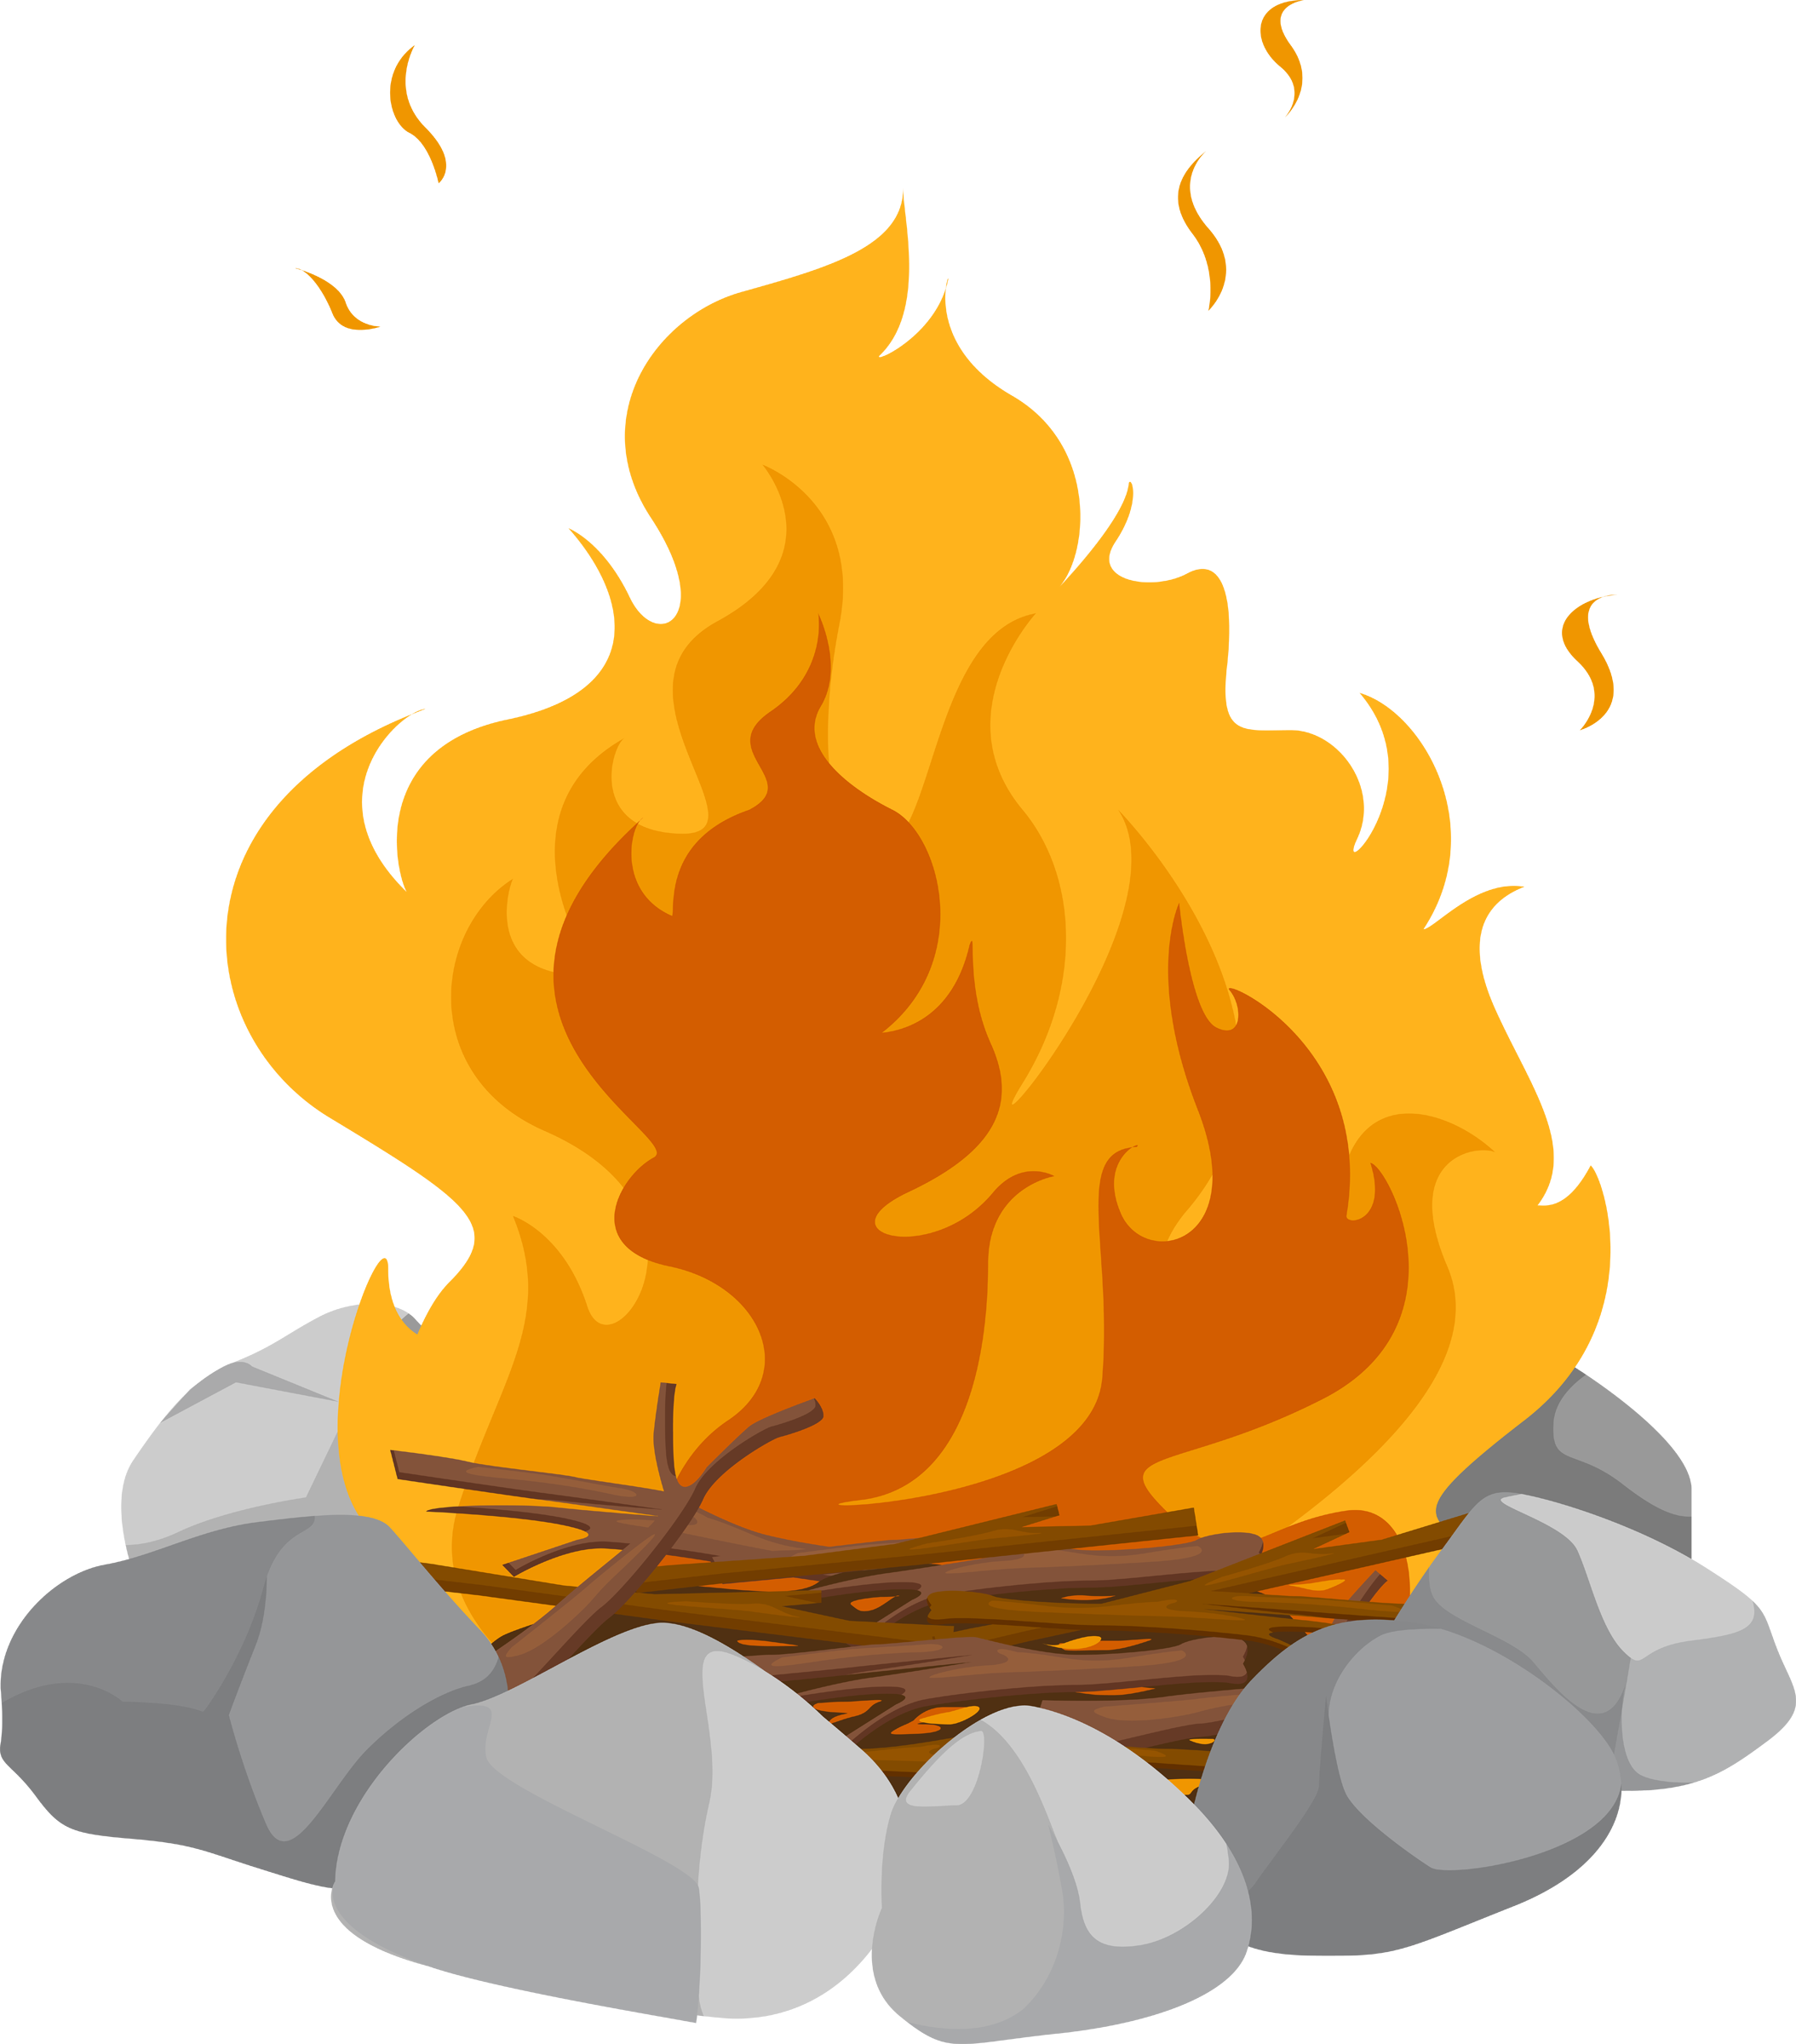 png free Out clipart campfire. Png images transparent free